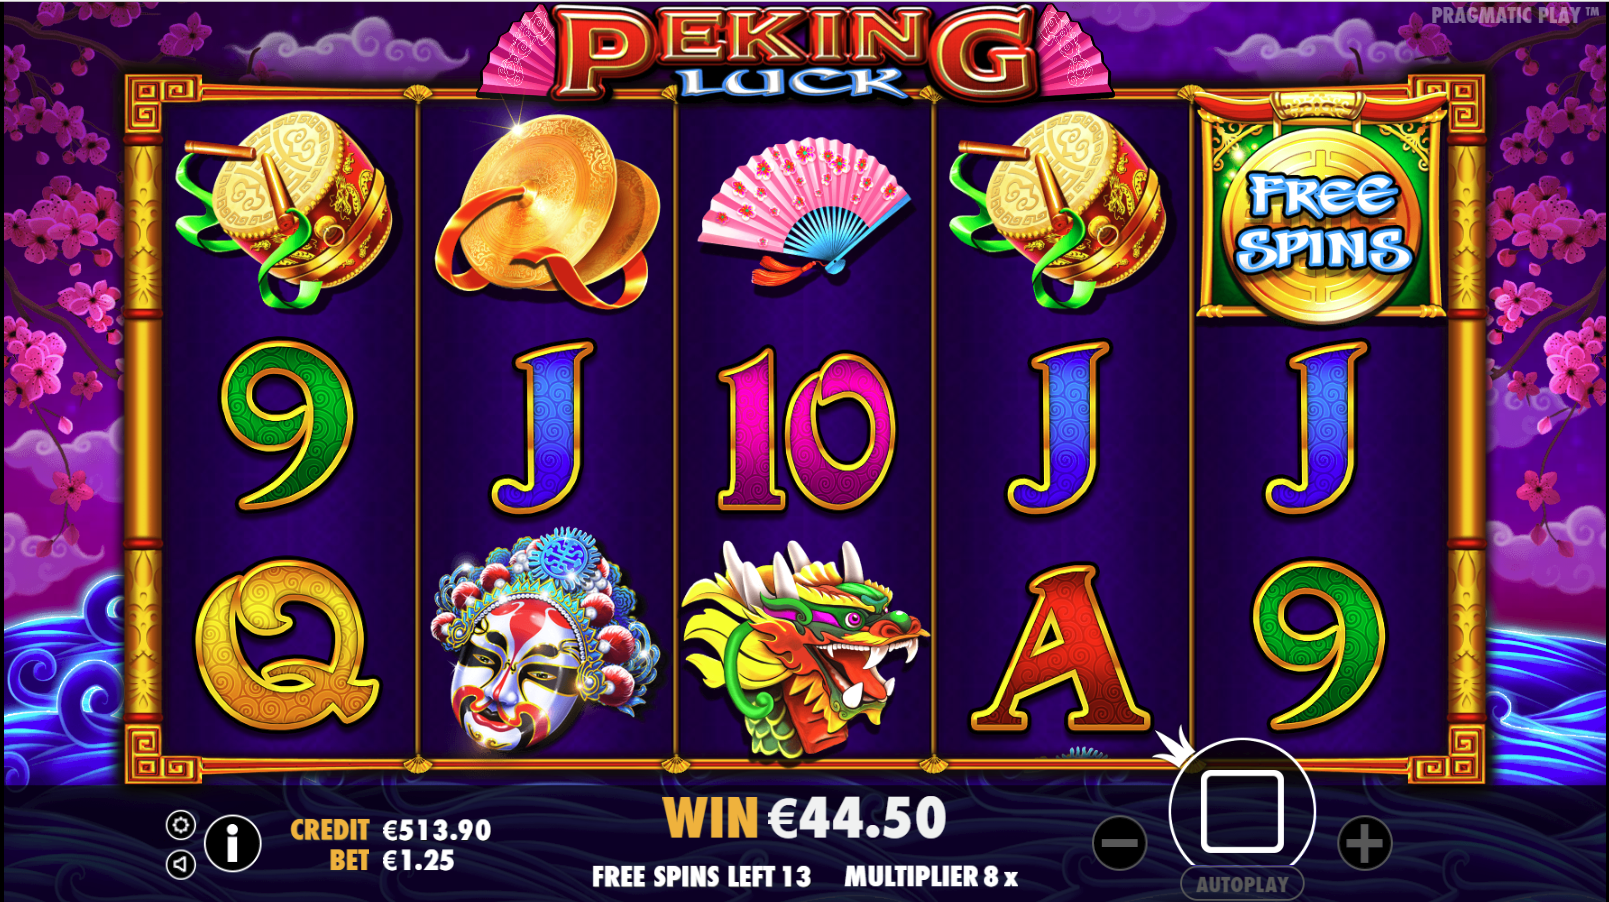 pragmatic play slots peking luck